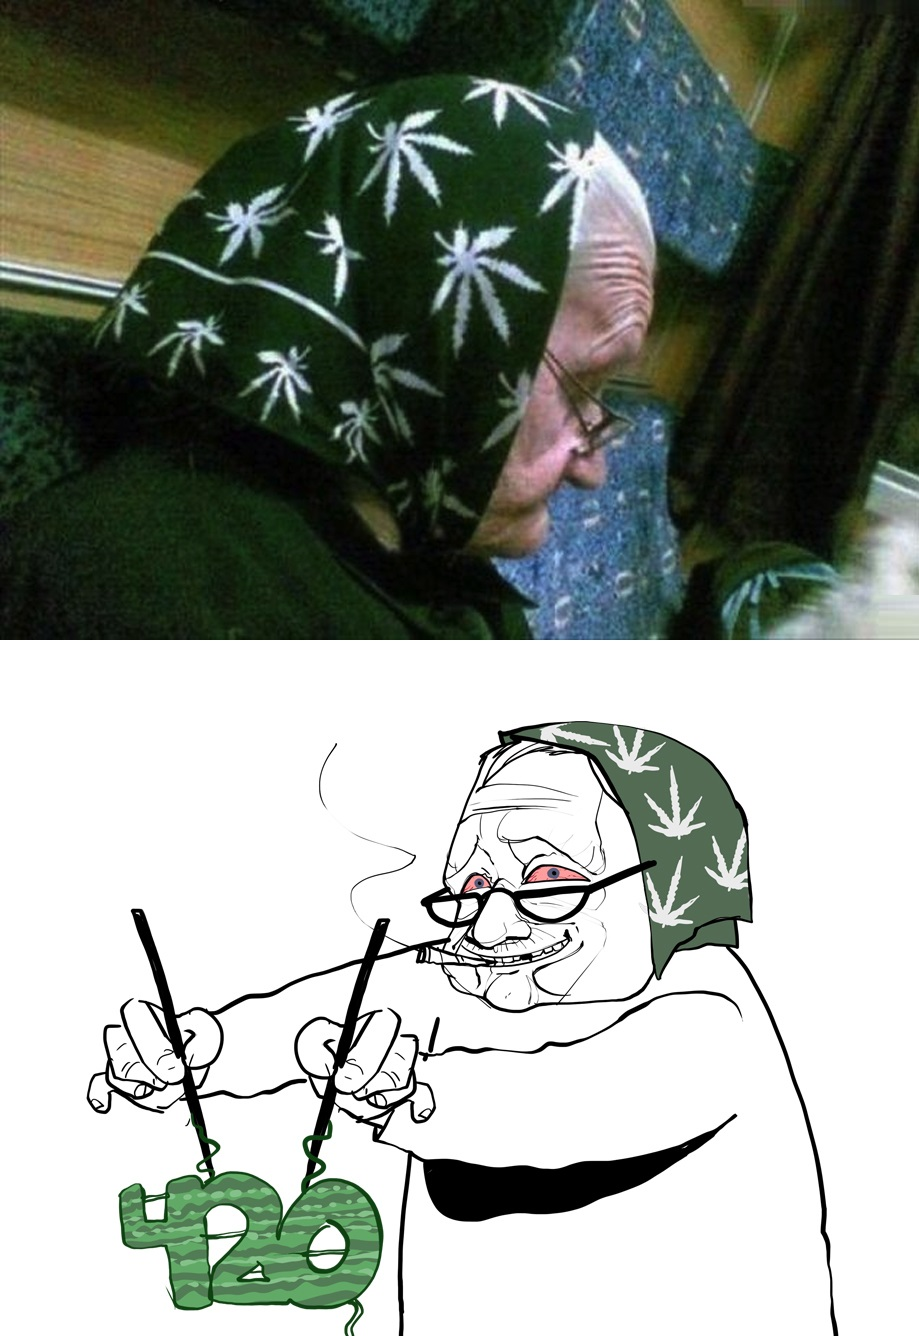 wanna-joke-grandma-cannabis